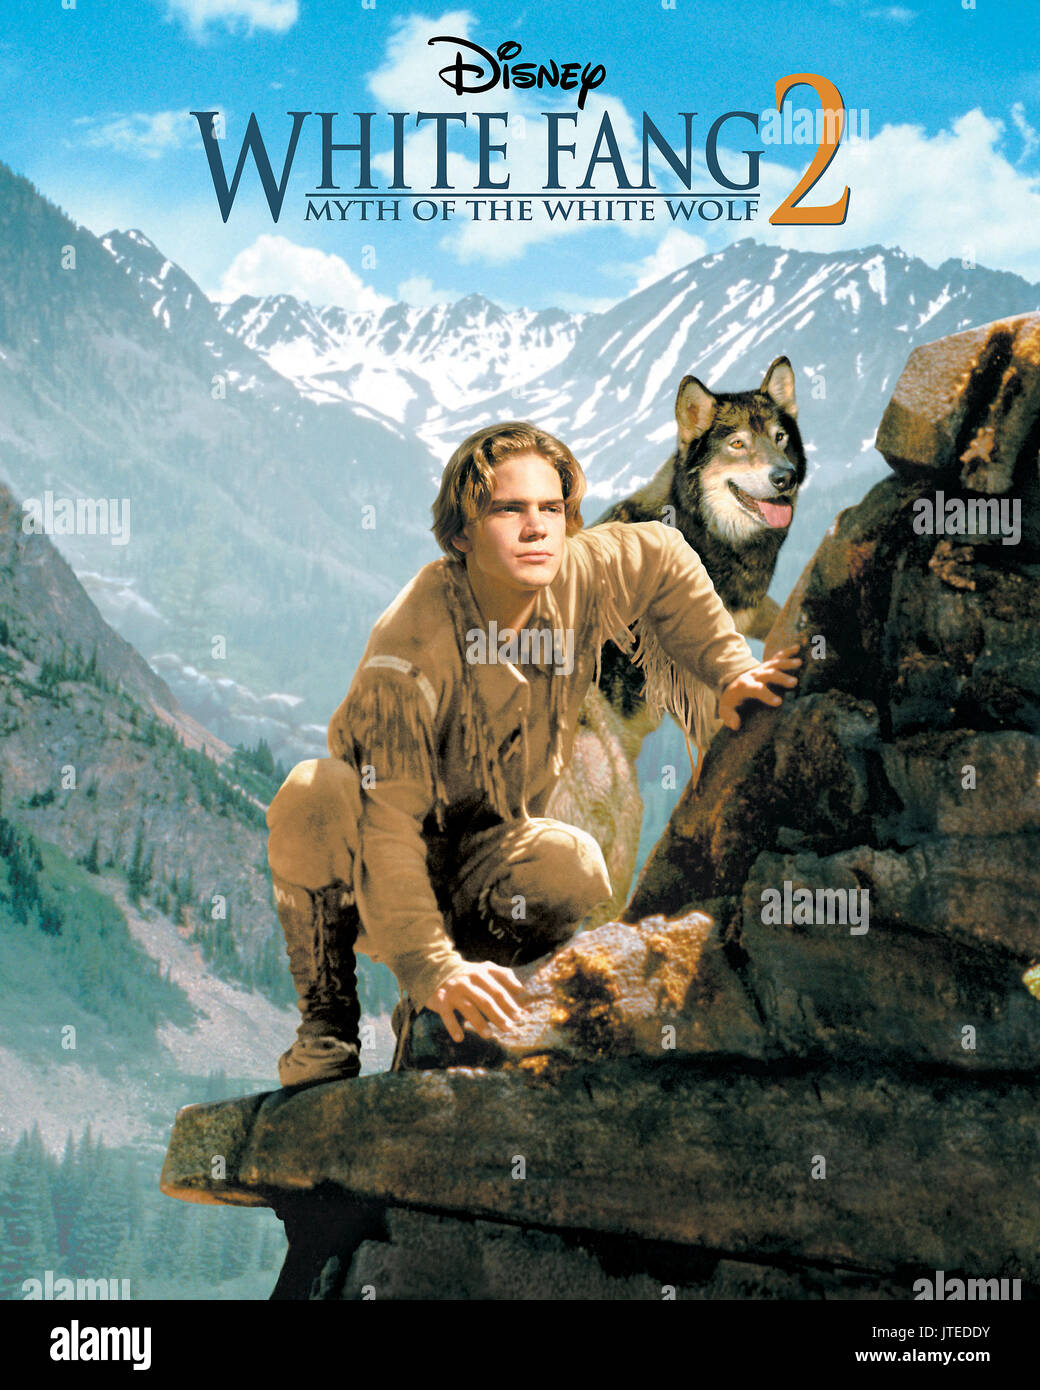 SCOTT BAIRSTOW POSTER WHITE FANG 2: MYTH OF THE WHITE WOLF (1994) - Stock Image